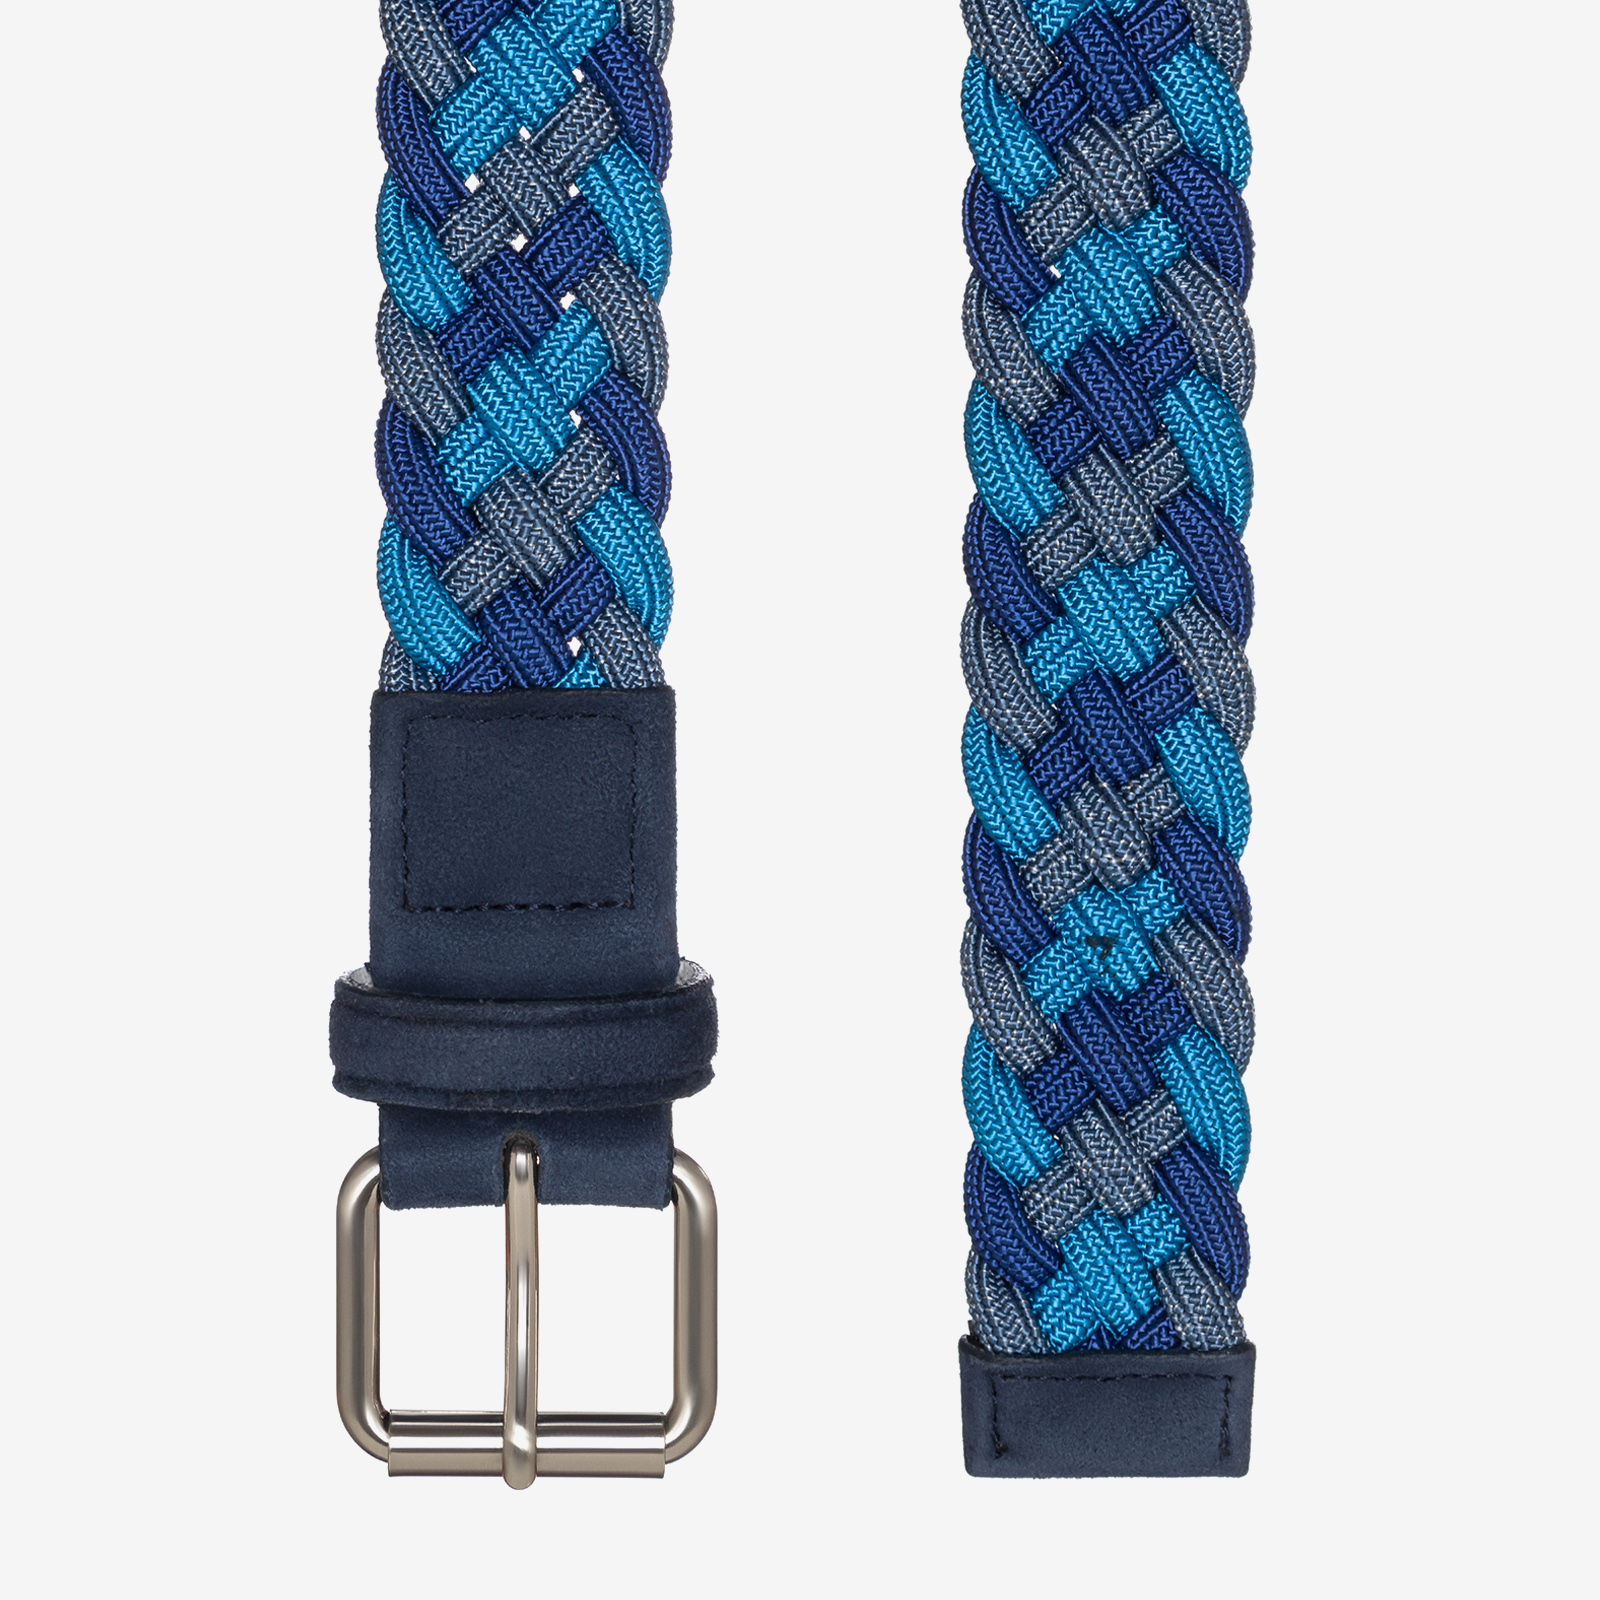 buckle product photo, belt product photography